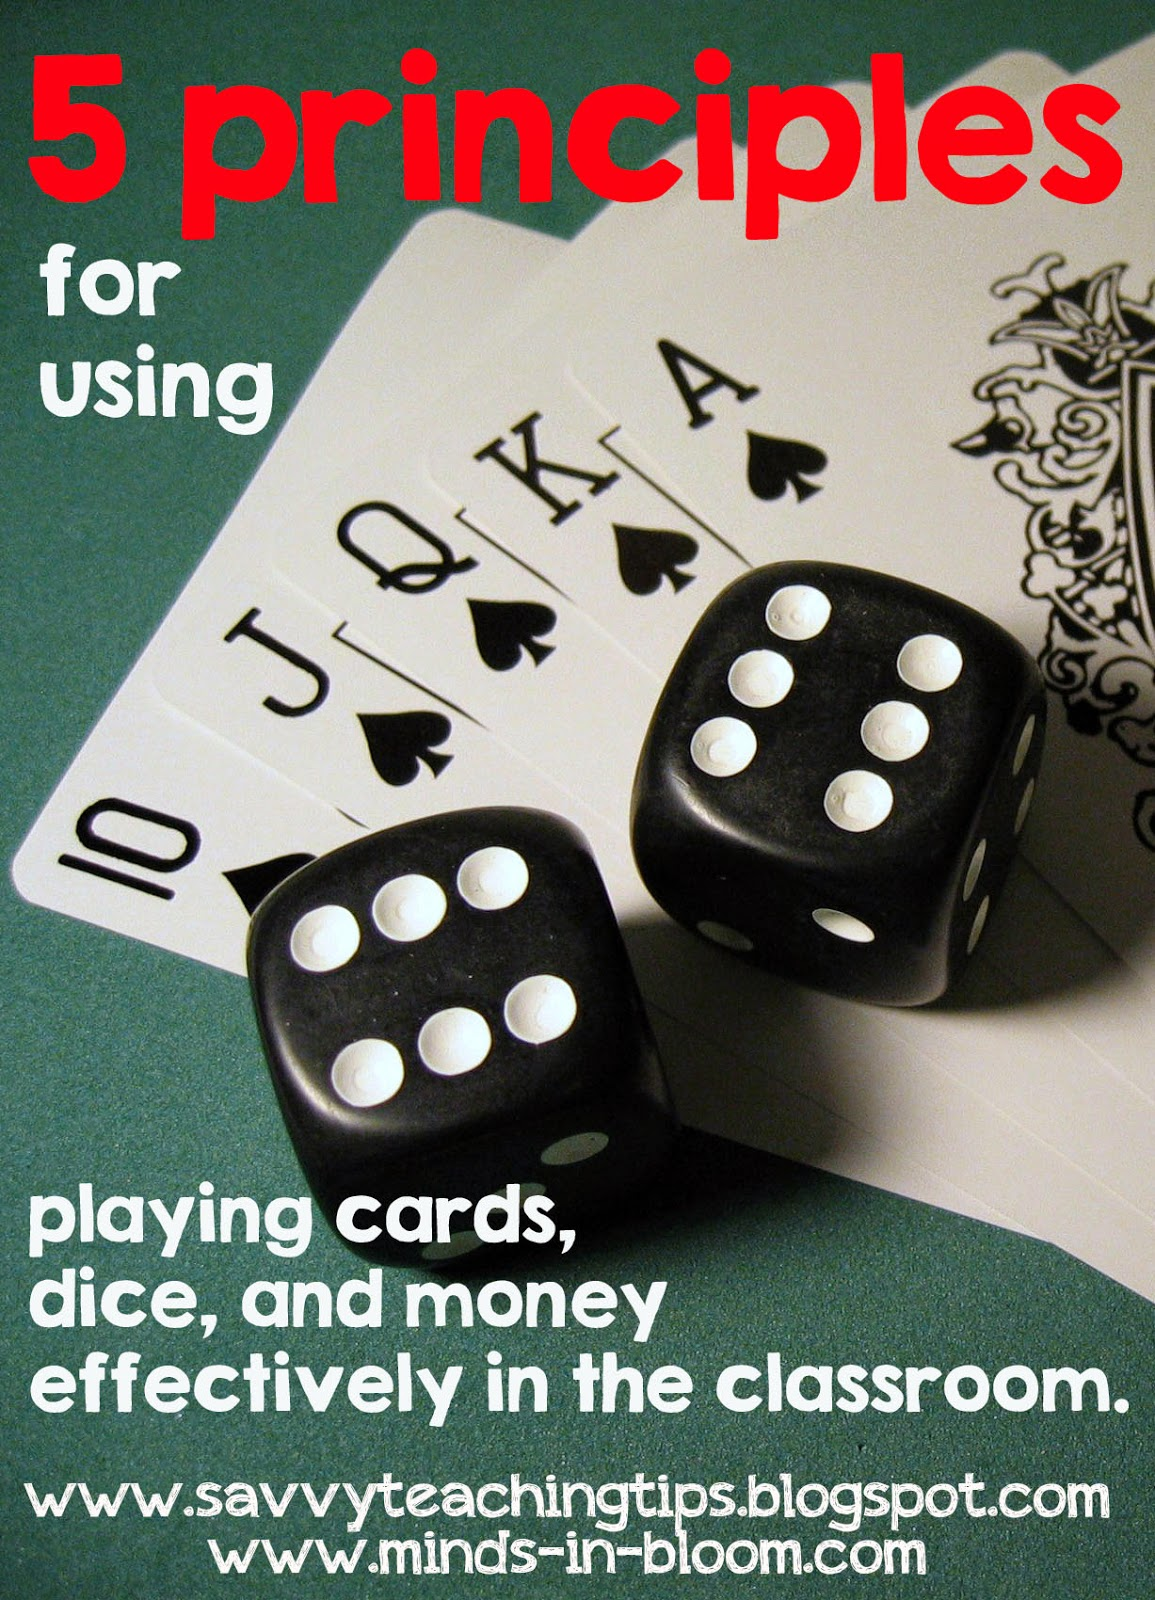 Math Games with money, dice, and playing cards – My students love playing math games with dice, money and playing cards.  Here's some classroom ideas and management tips for using these materials efficiently and effectively and still have fun!